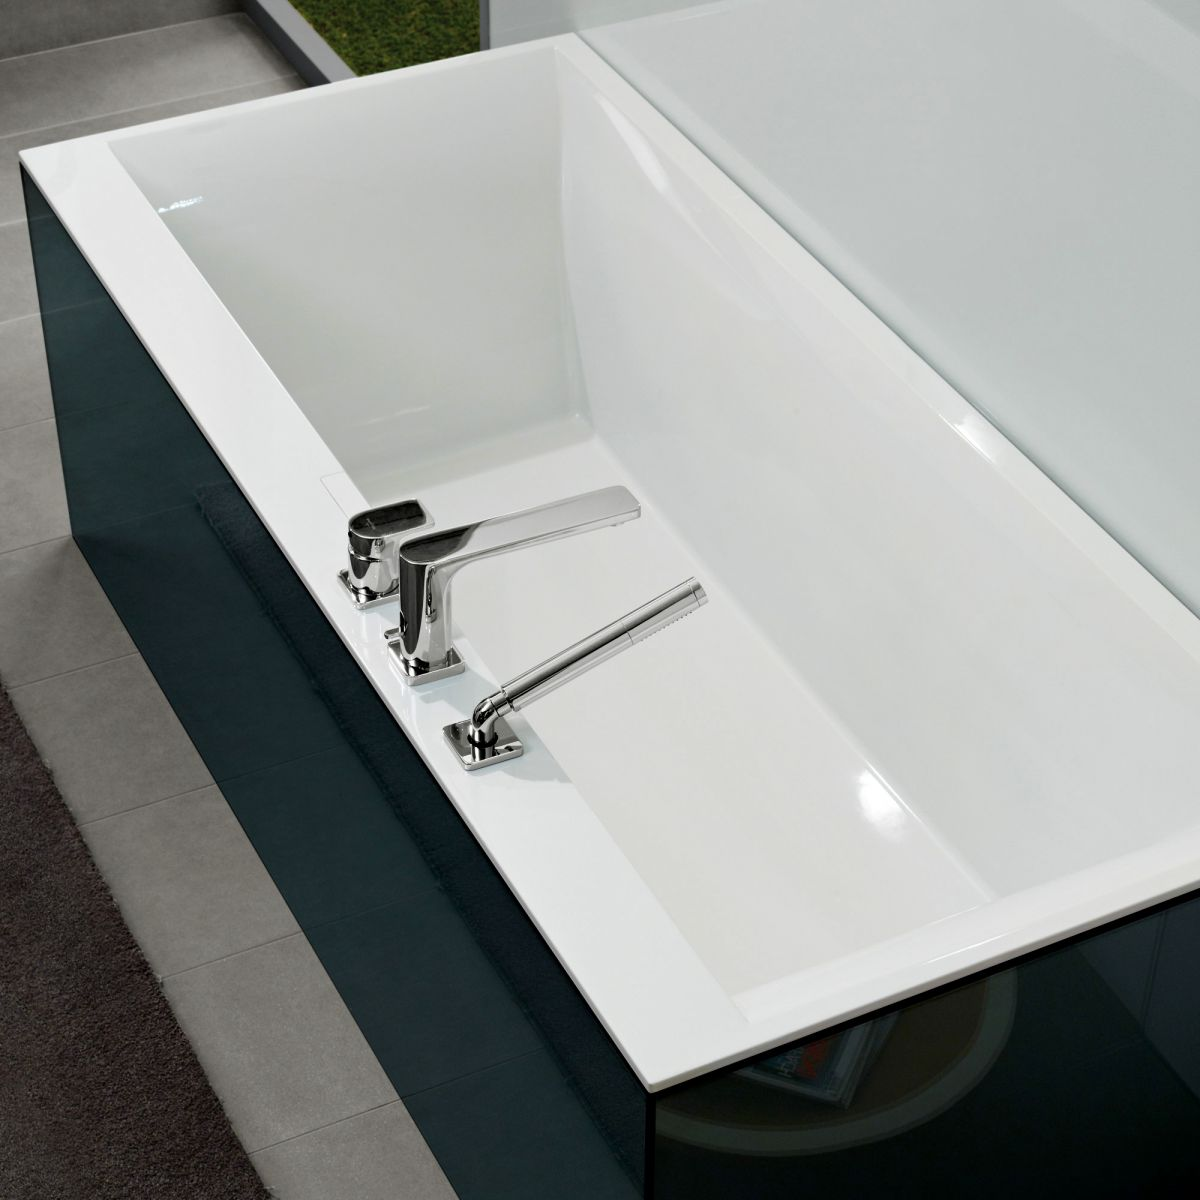 villeroy and boch squaro edge 12 luxury bath uk bathrooms. Black Bedroom Furniture Sets. Home Design Ideas